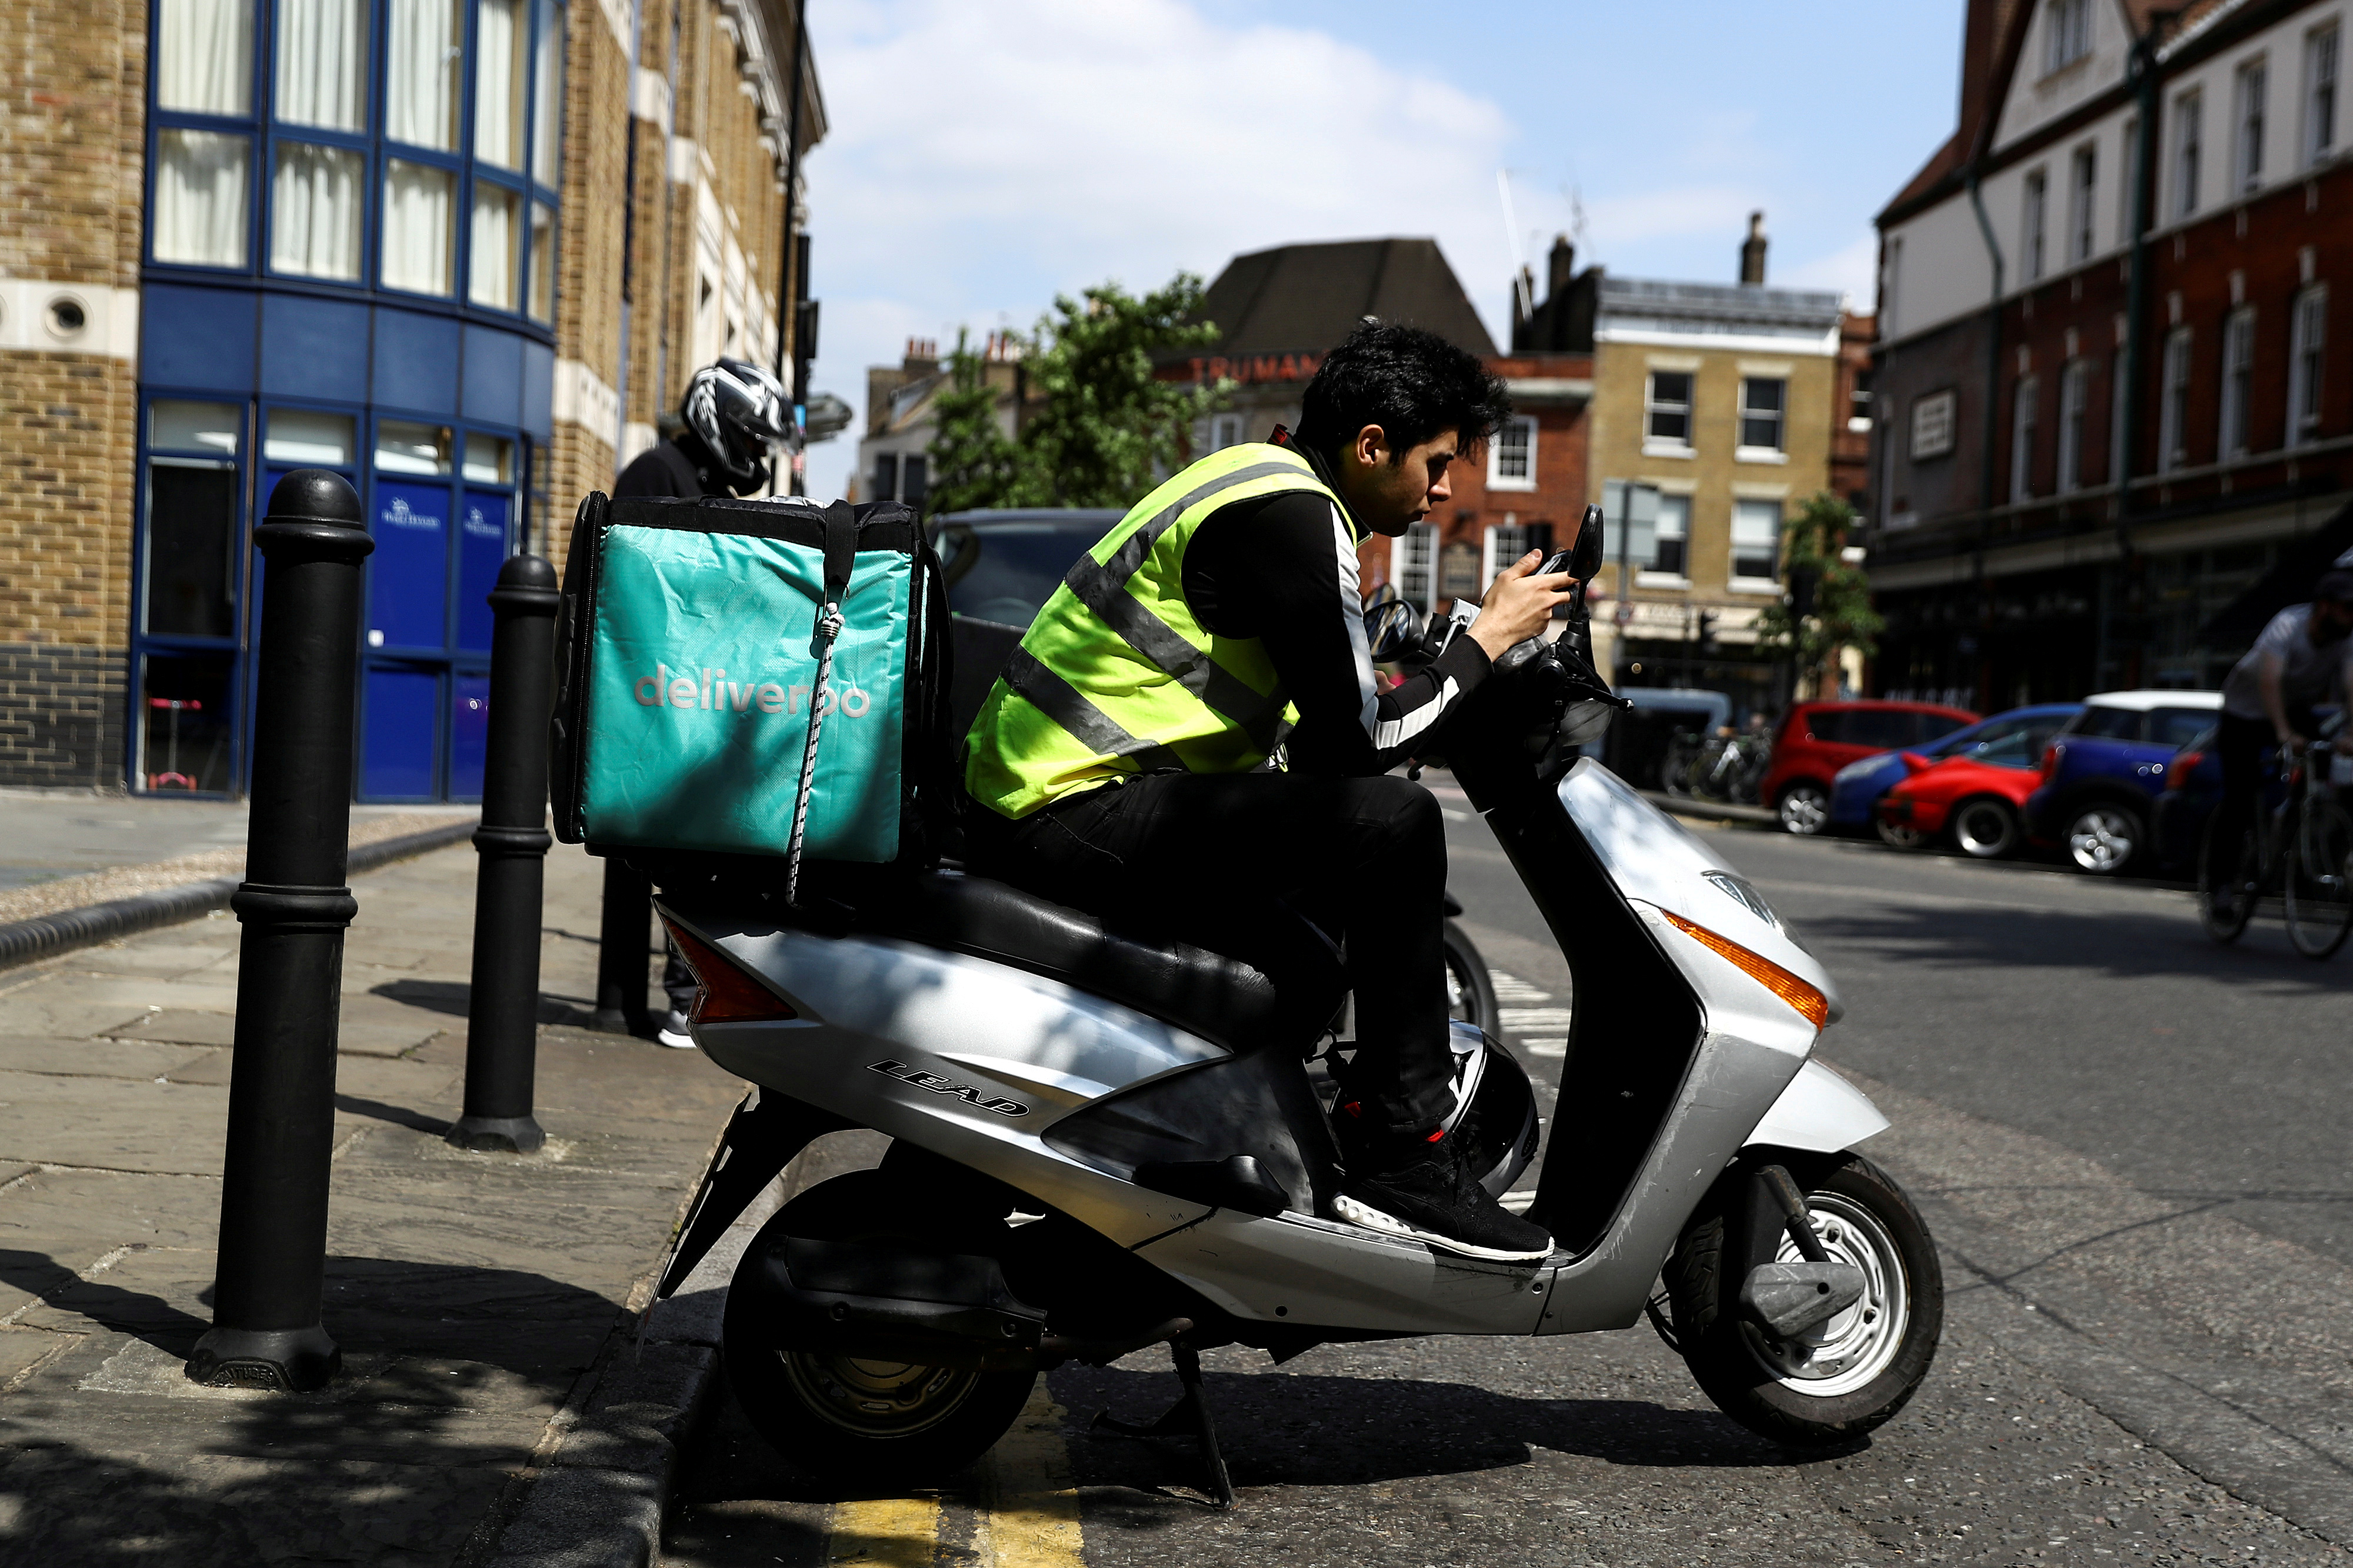 A Deliveroo scooter driver takes a break between deliveries in London, Britain June 8, 2018. REUTERS/Simon Dawson//File Photo